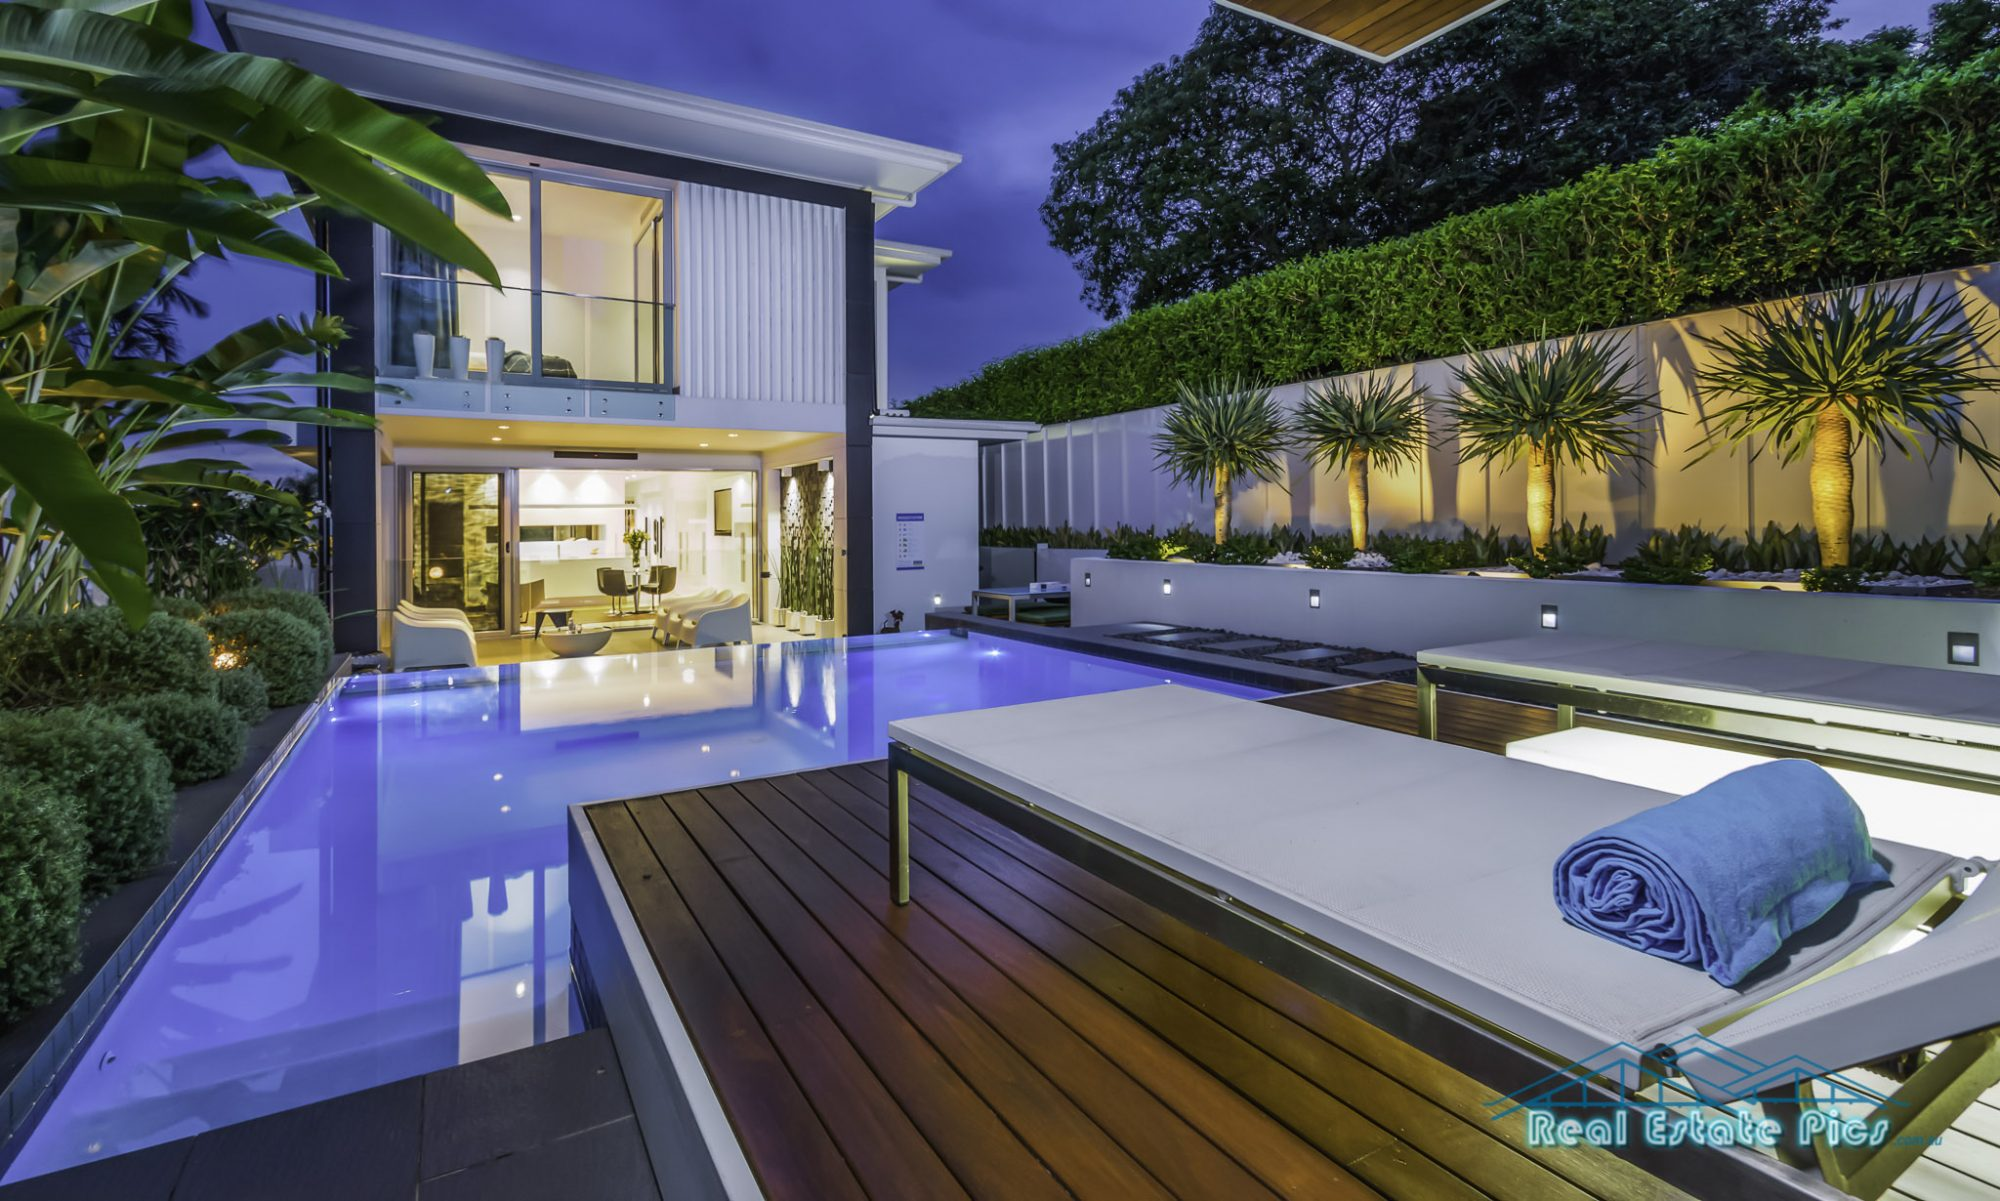 Real Estate Pics and Floor Plans | Real Estate Photography in Brisbane